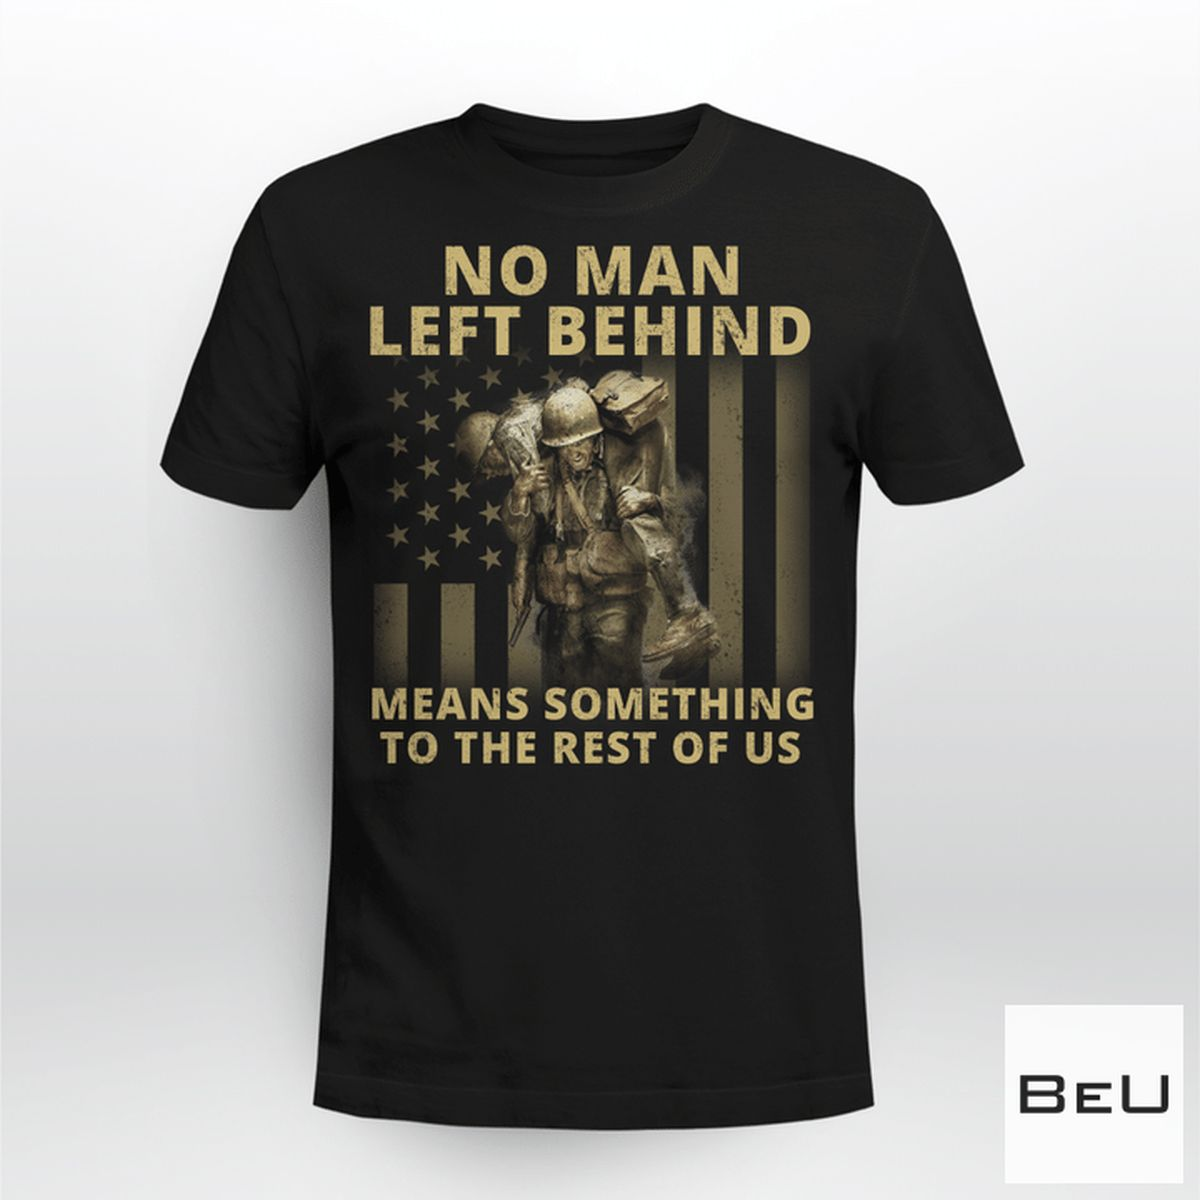 No Man Left Behind Means Something To The Rest Of Us Shirt, hoodie, tank top